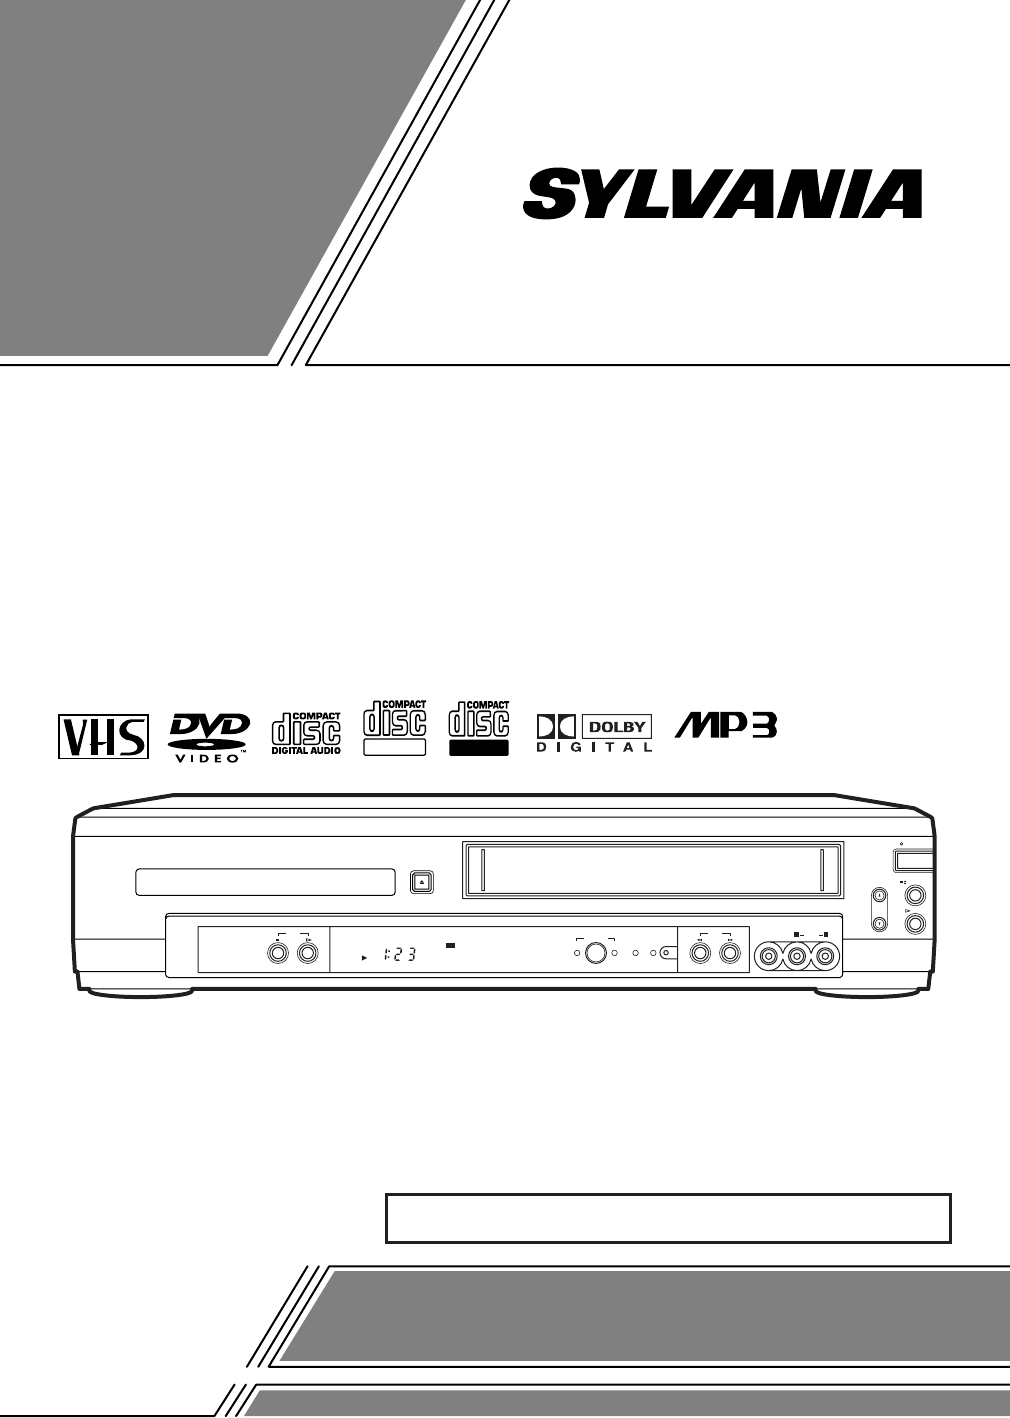 proline tv dvd combo manual